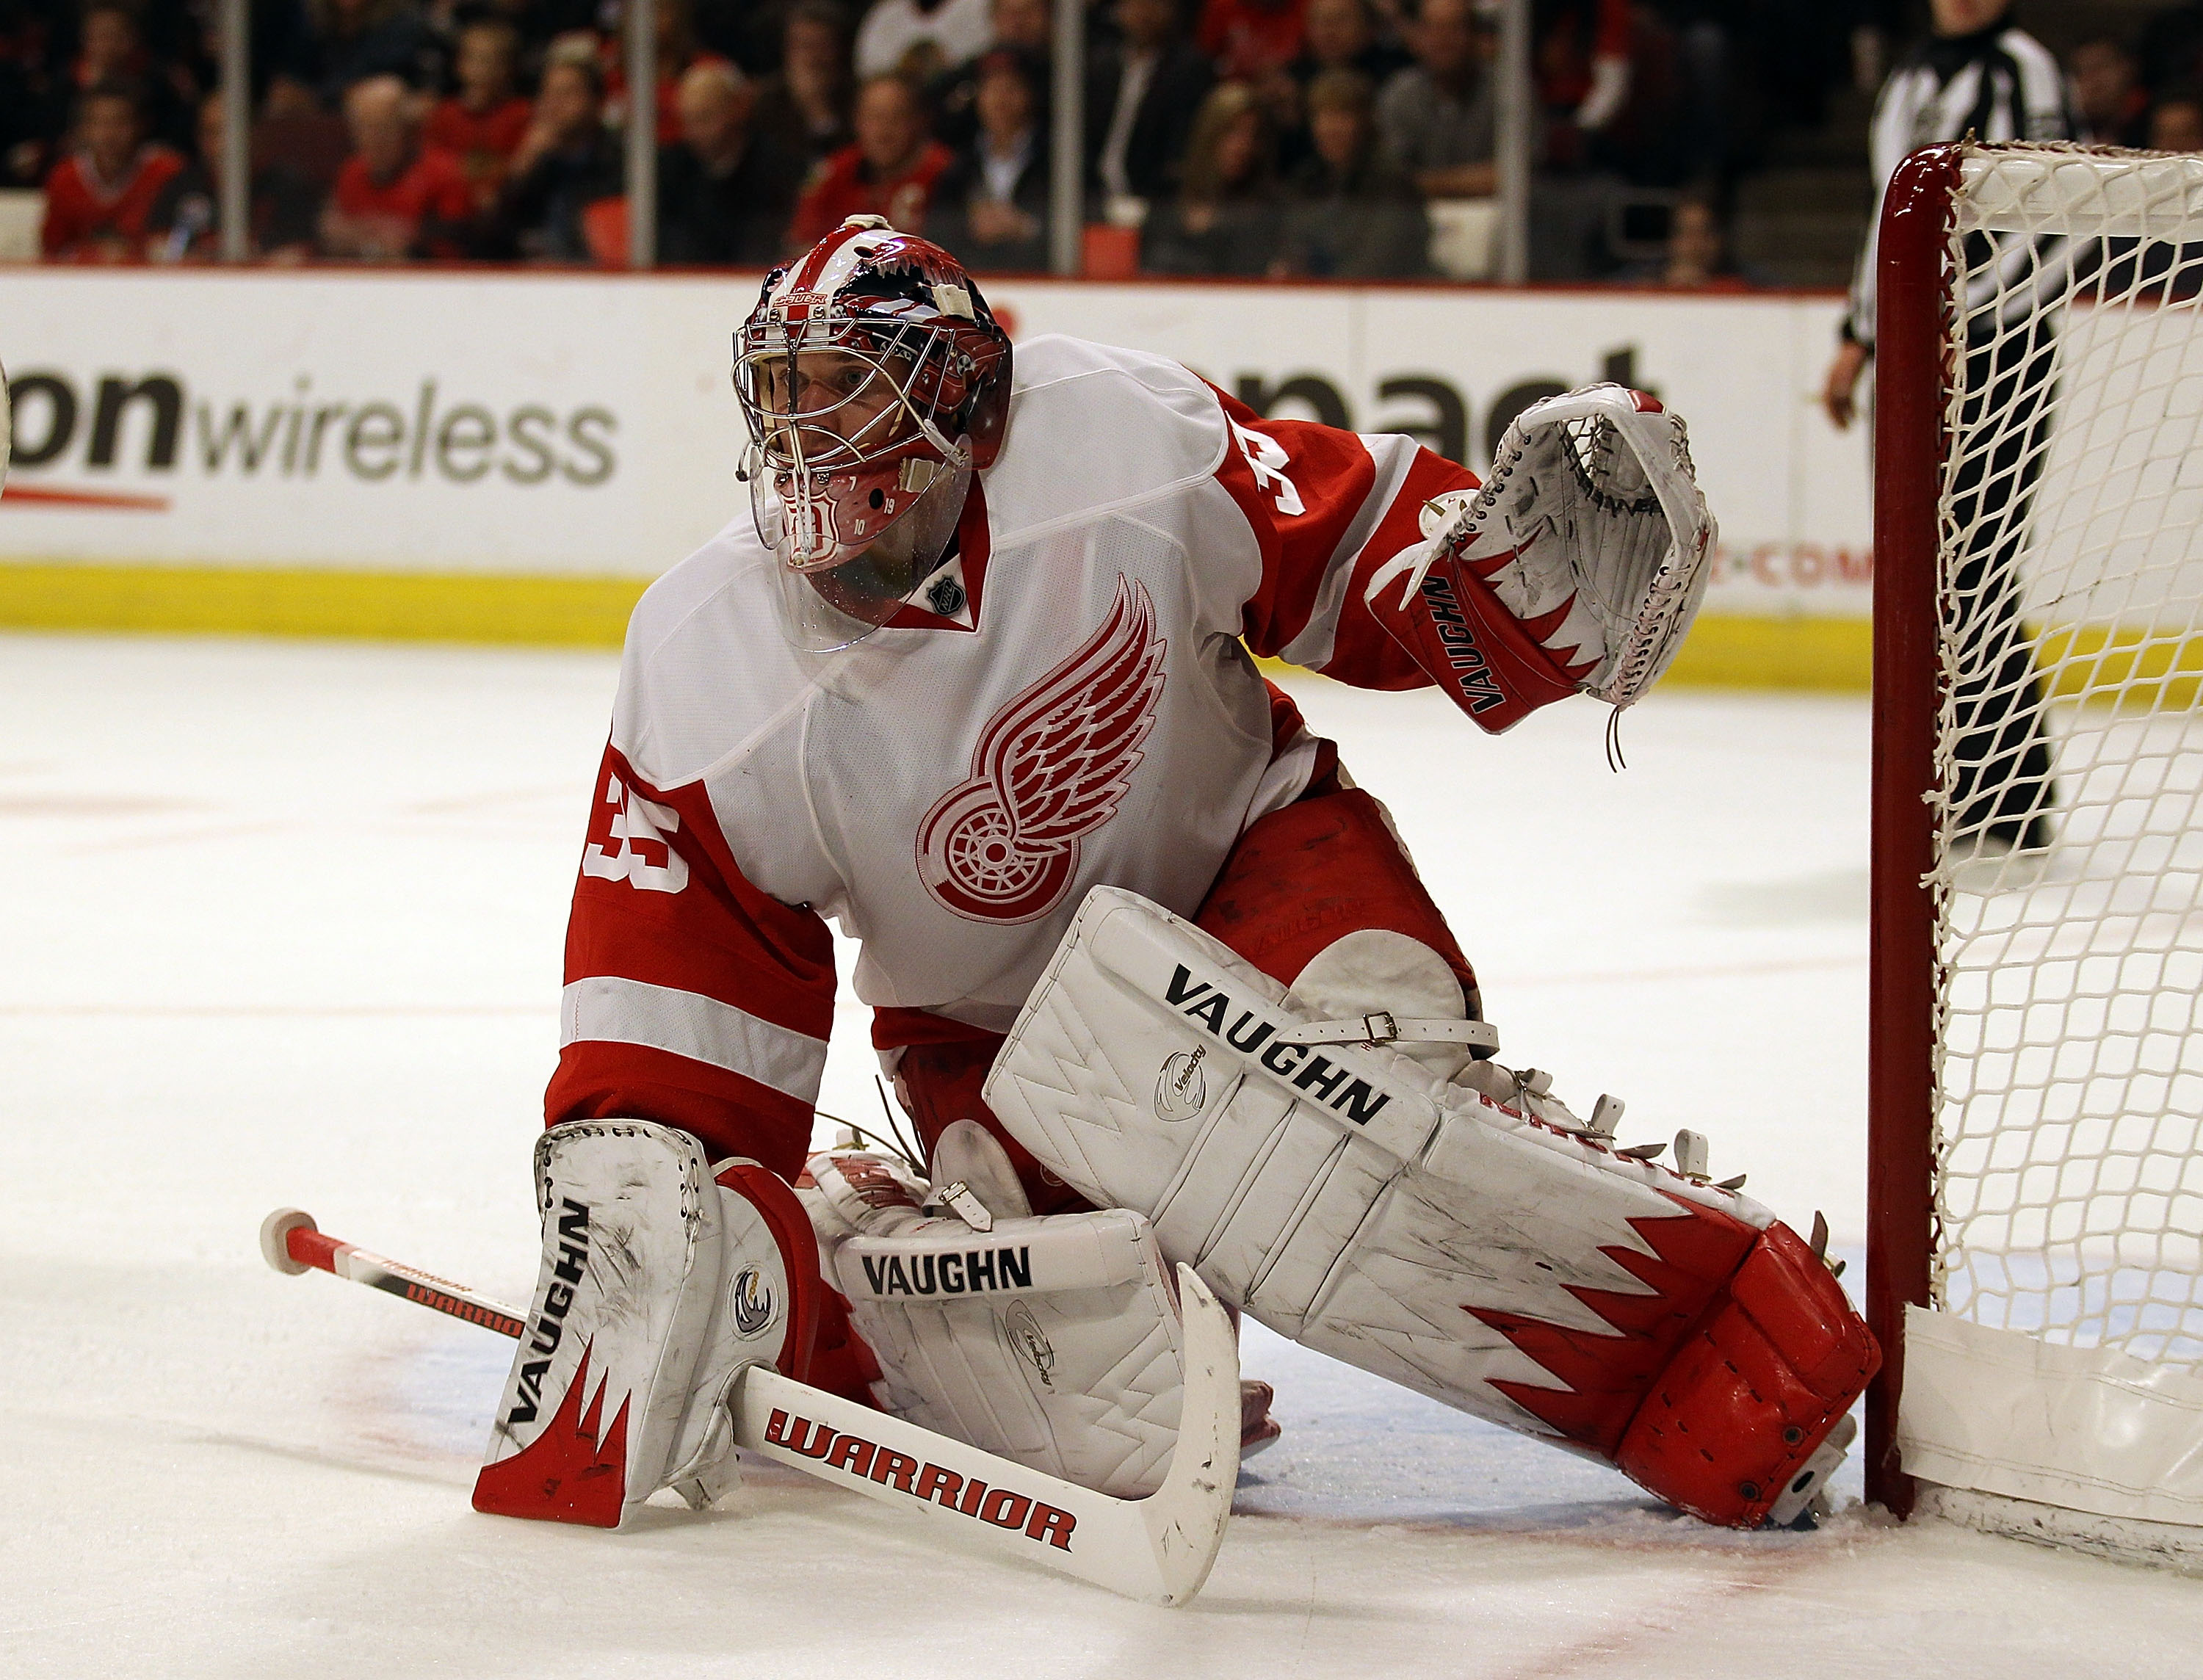 CHICAGO, IL - DECEMBER 17: Jimmy Howard #35 of the Detroit Red Wings keeps his eyes on the action against the Chicago Blackhawks at the United Center on December 17, 2010 in Chicago, Illinois. The Blackhawks defeated the Red Wings 4-1. (Photo by Jonathan